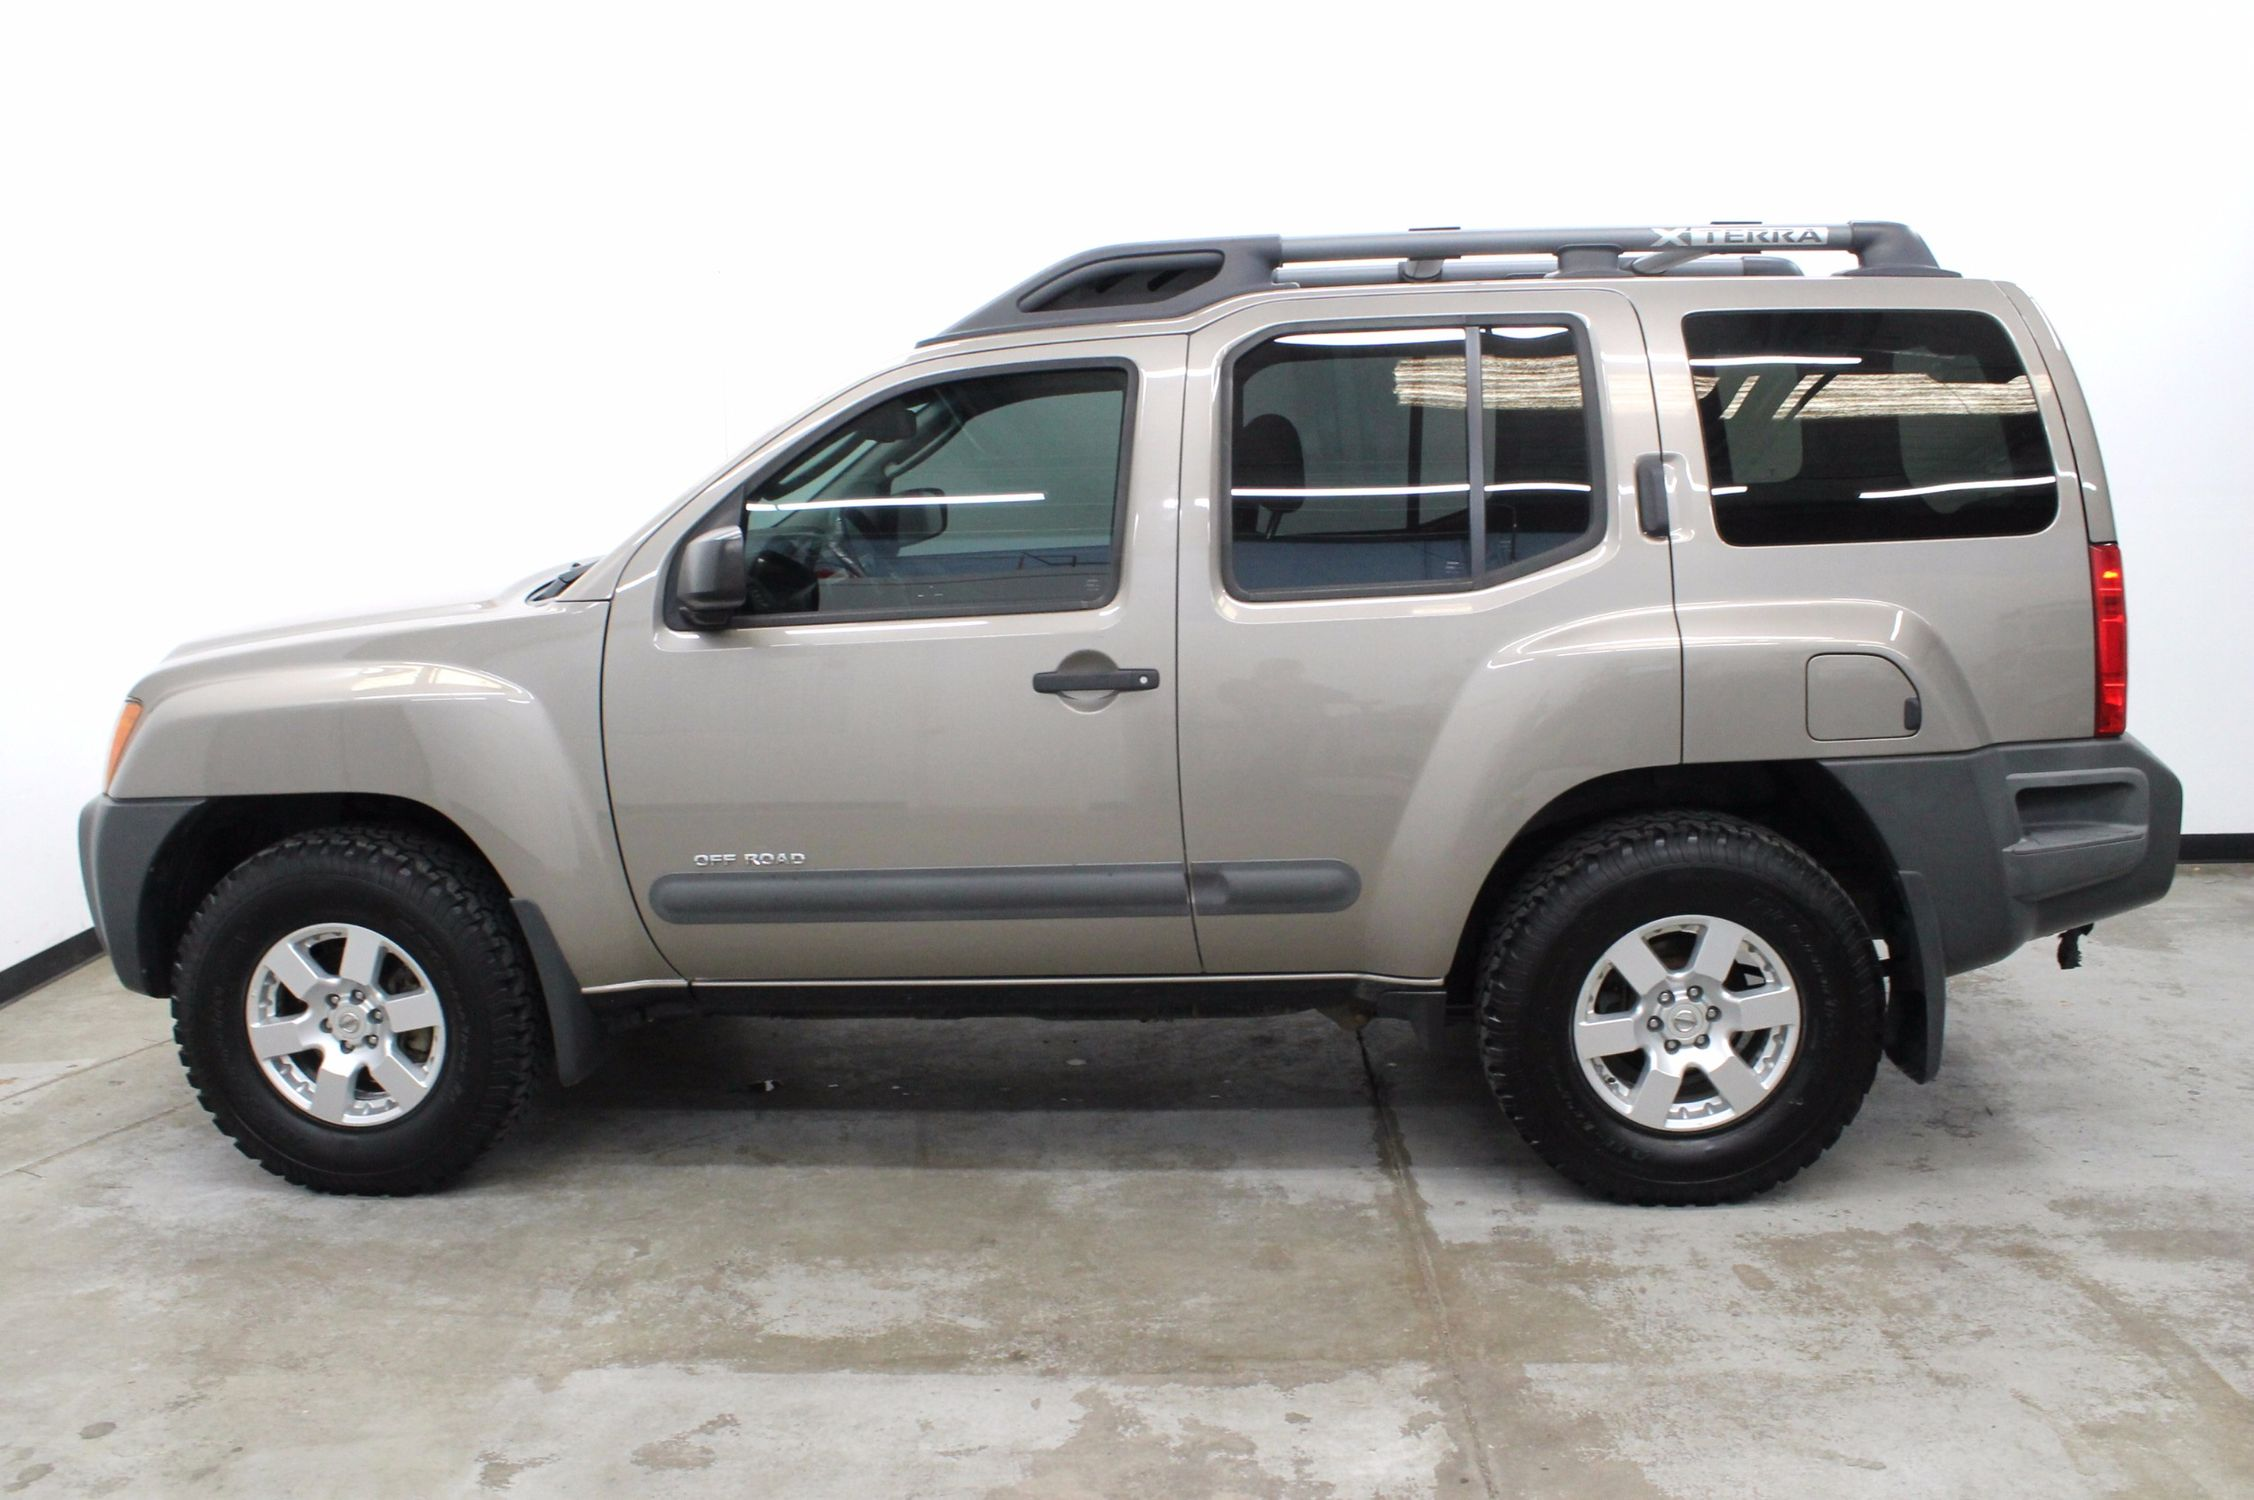 2008 Nissan Xterra Off-Road. One Owner - Manual Transmission! SOLD. VIEW 20  HI-RES PHOTOS